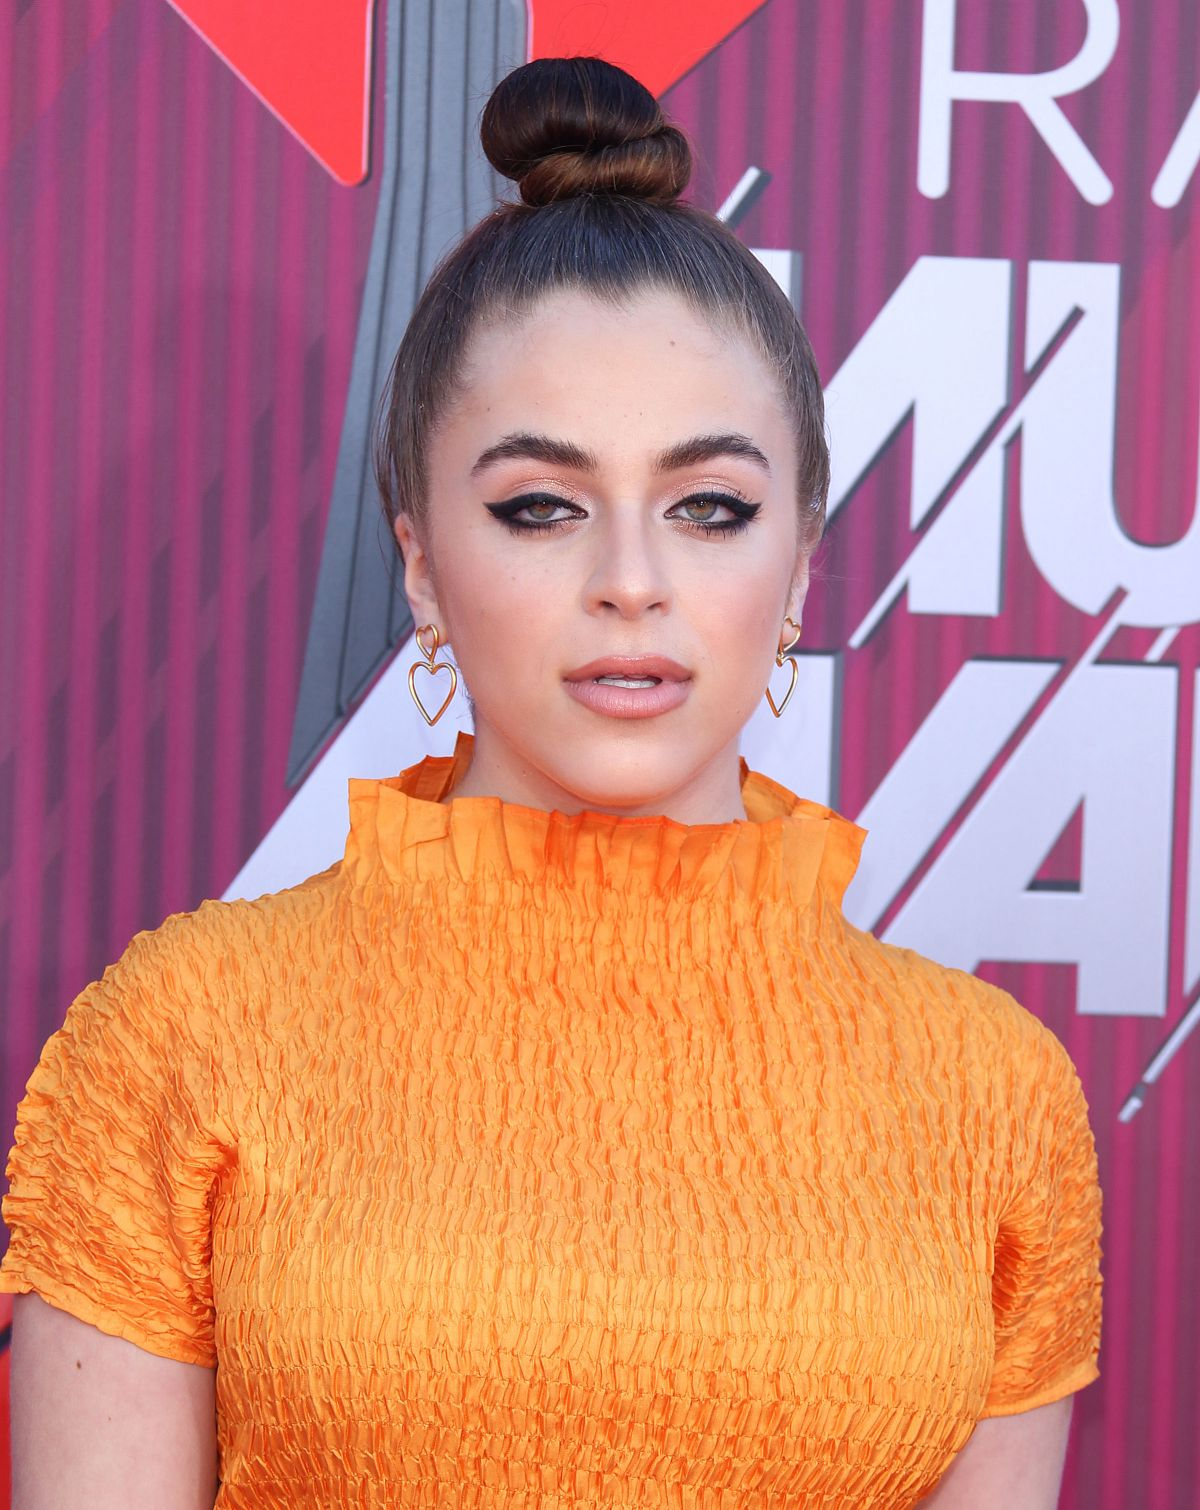 BABY ARIEL at Iheartradio Music Awards 2019 in Los Angeles ...